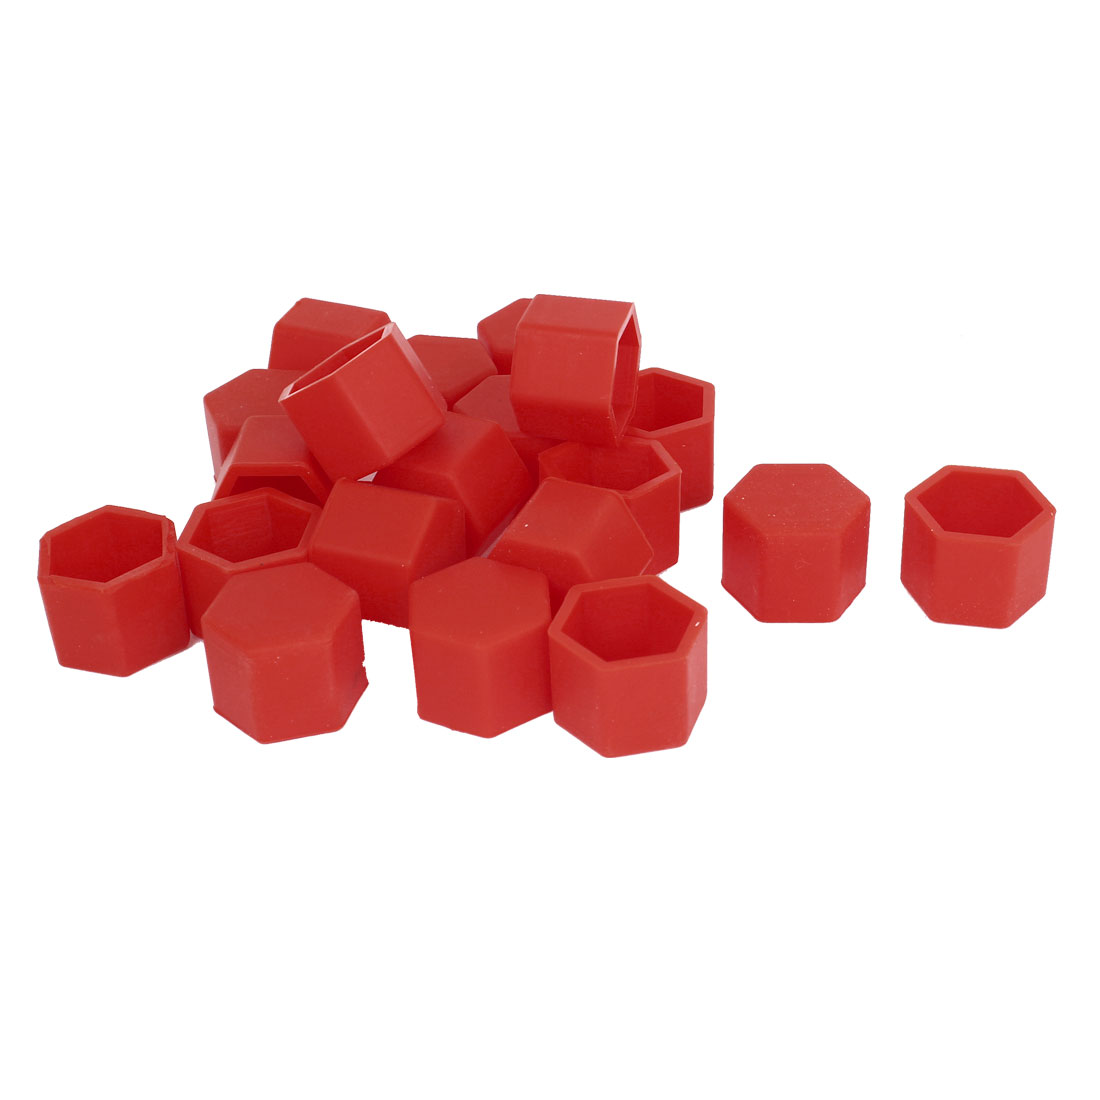 20 Pcs Red Silicone Wheel Lugs Nuts Bolts Covers Hub Tyres Screw Dust Caps